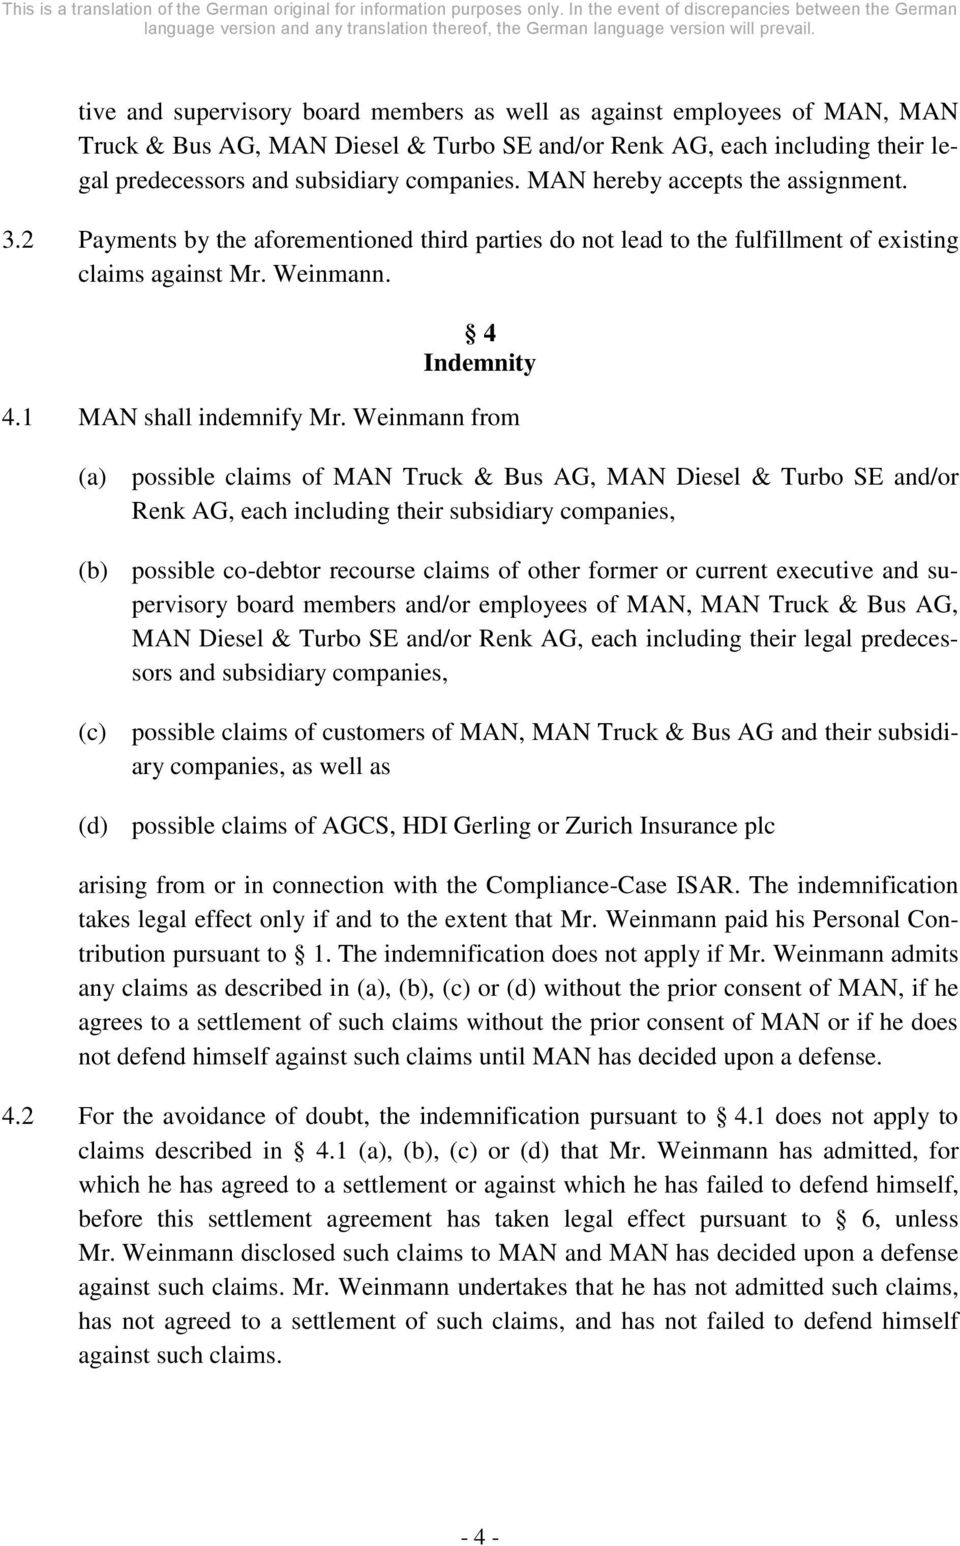 Weinmann from (a) possible claims of MAN Truck & Bus AG, MAN Diesel & Turbo SE and/or Renk AG, each including their subsidiary companies, (b) possible co-debtor recourse claims of other former or